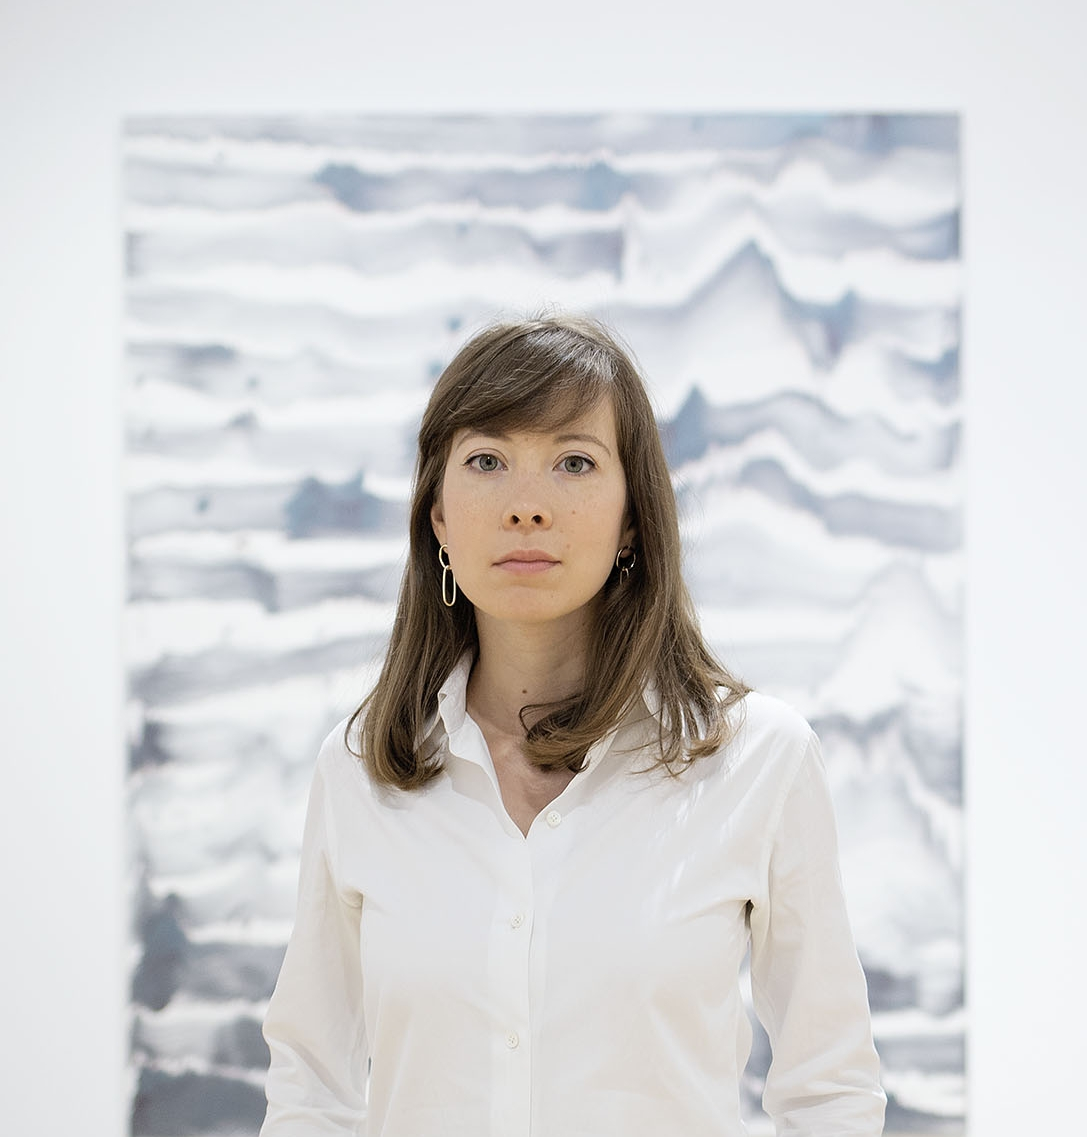 Vanessa Clairet - Director of Communications at Galerie Perrotin